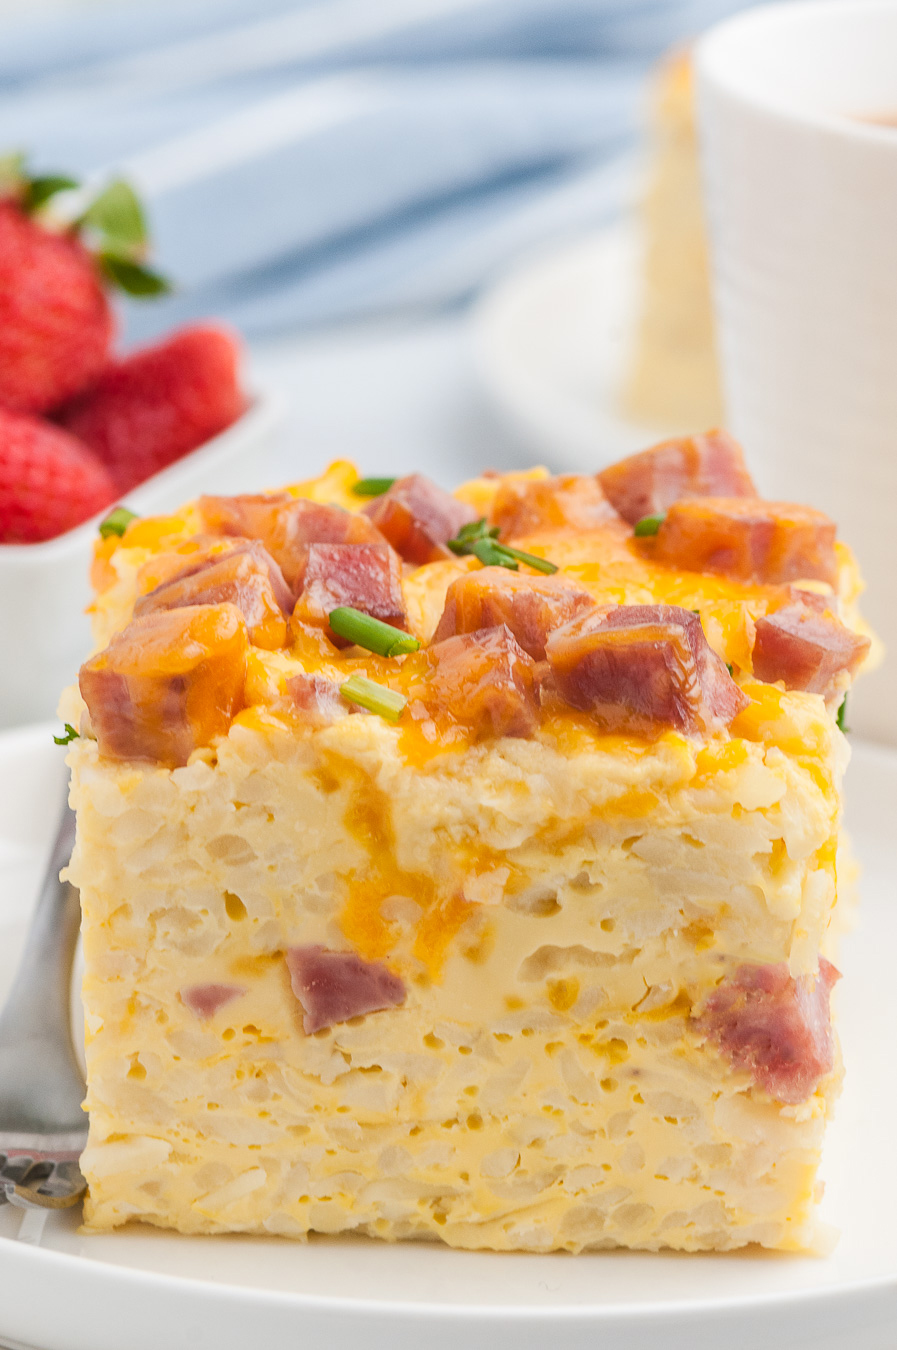 hearty slice of breakfast casserole sliced into a square portion. Strawberries and coffee mug in background.